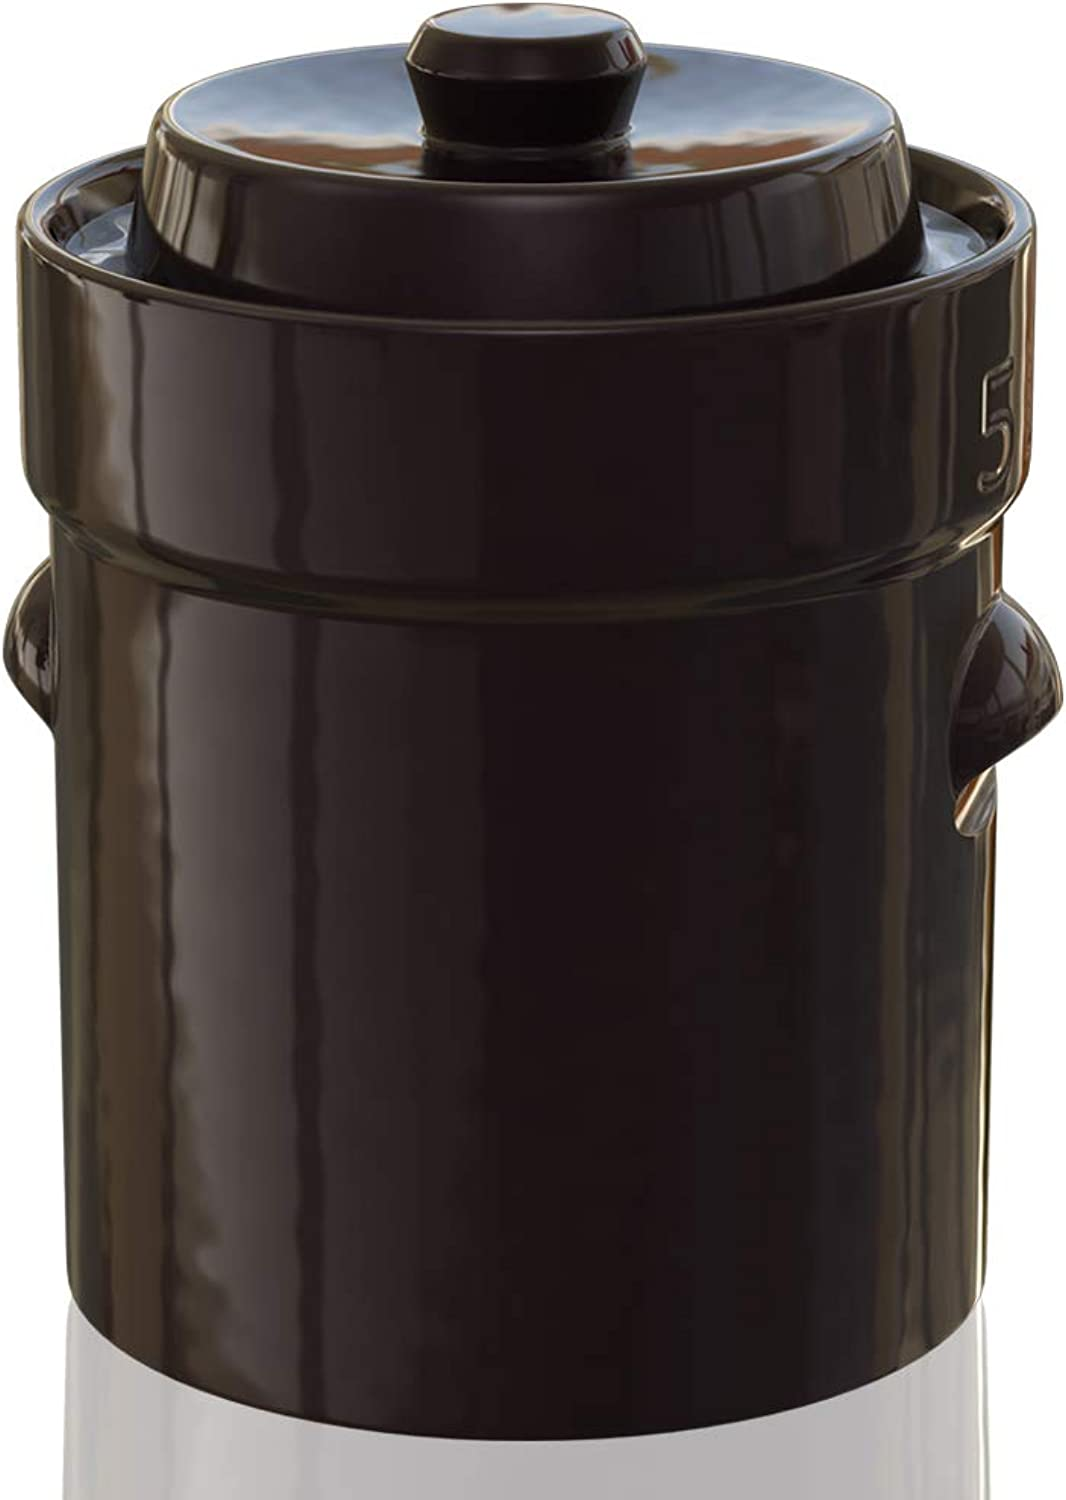 TSM Products 31060 German Style Fermentation Harvest Pot with Stone Weight, 5-Liter